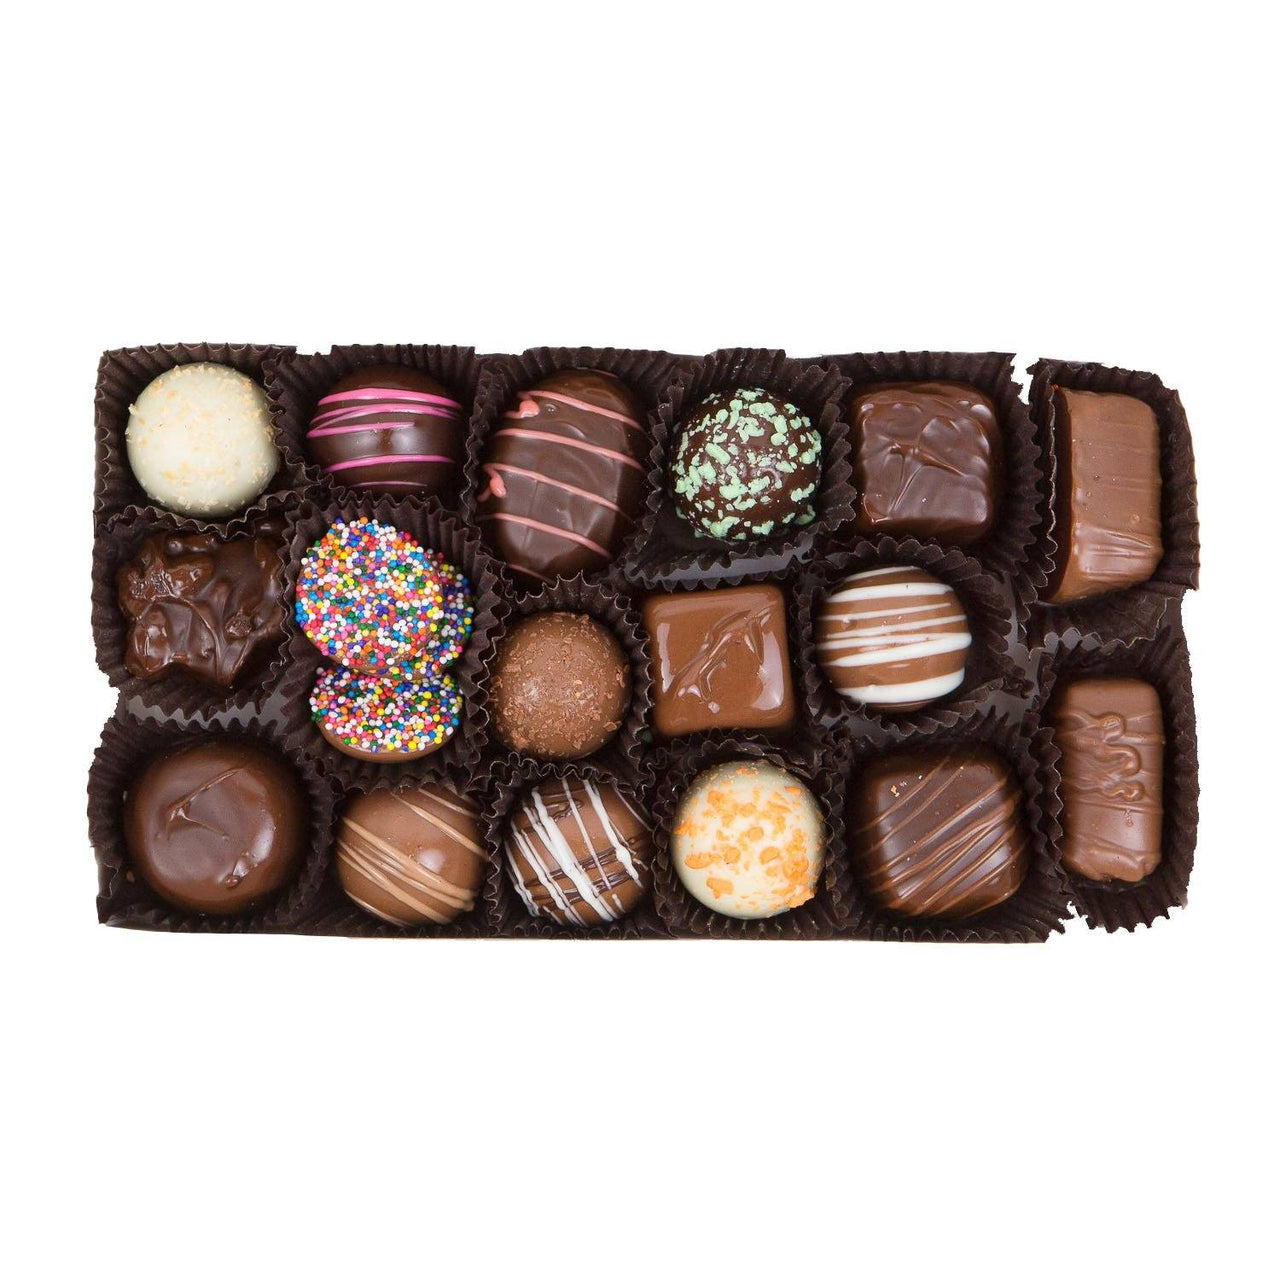 Gifts for Him - Assorted Chocolate Gift Box - Jackie's Chocolate